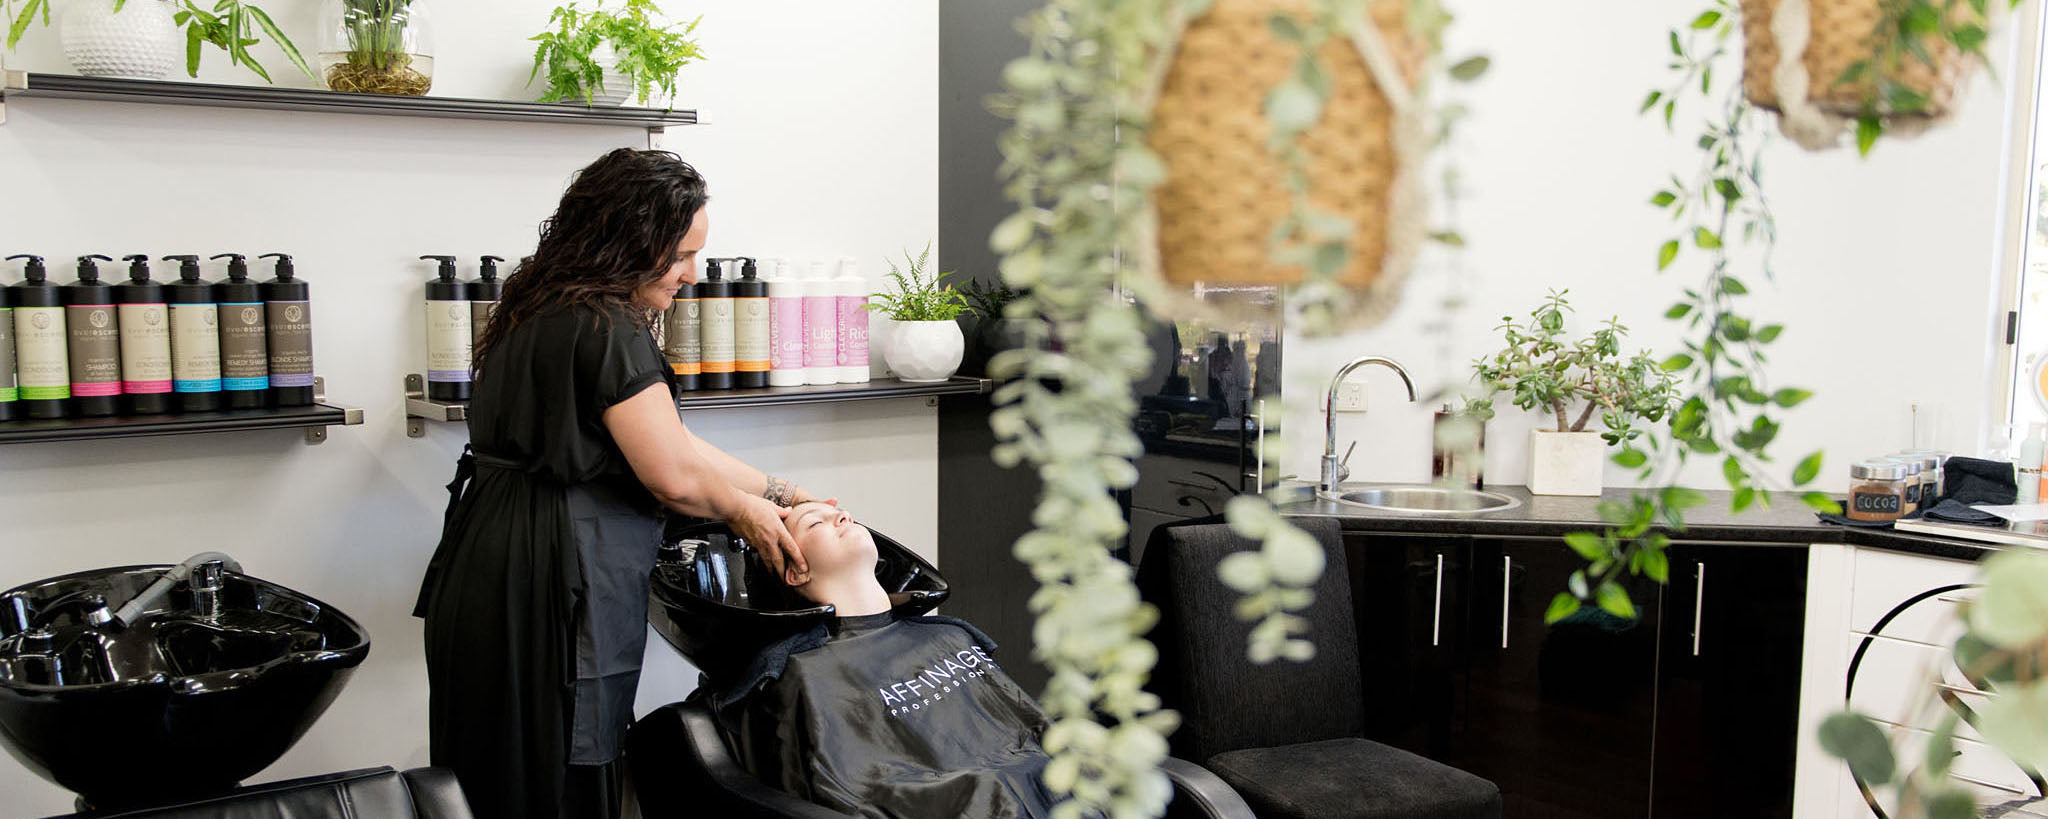 Oxford Street Hair - Bulimia & Hawthorne hair salon